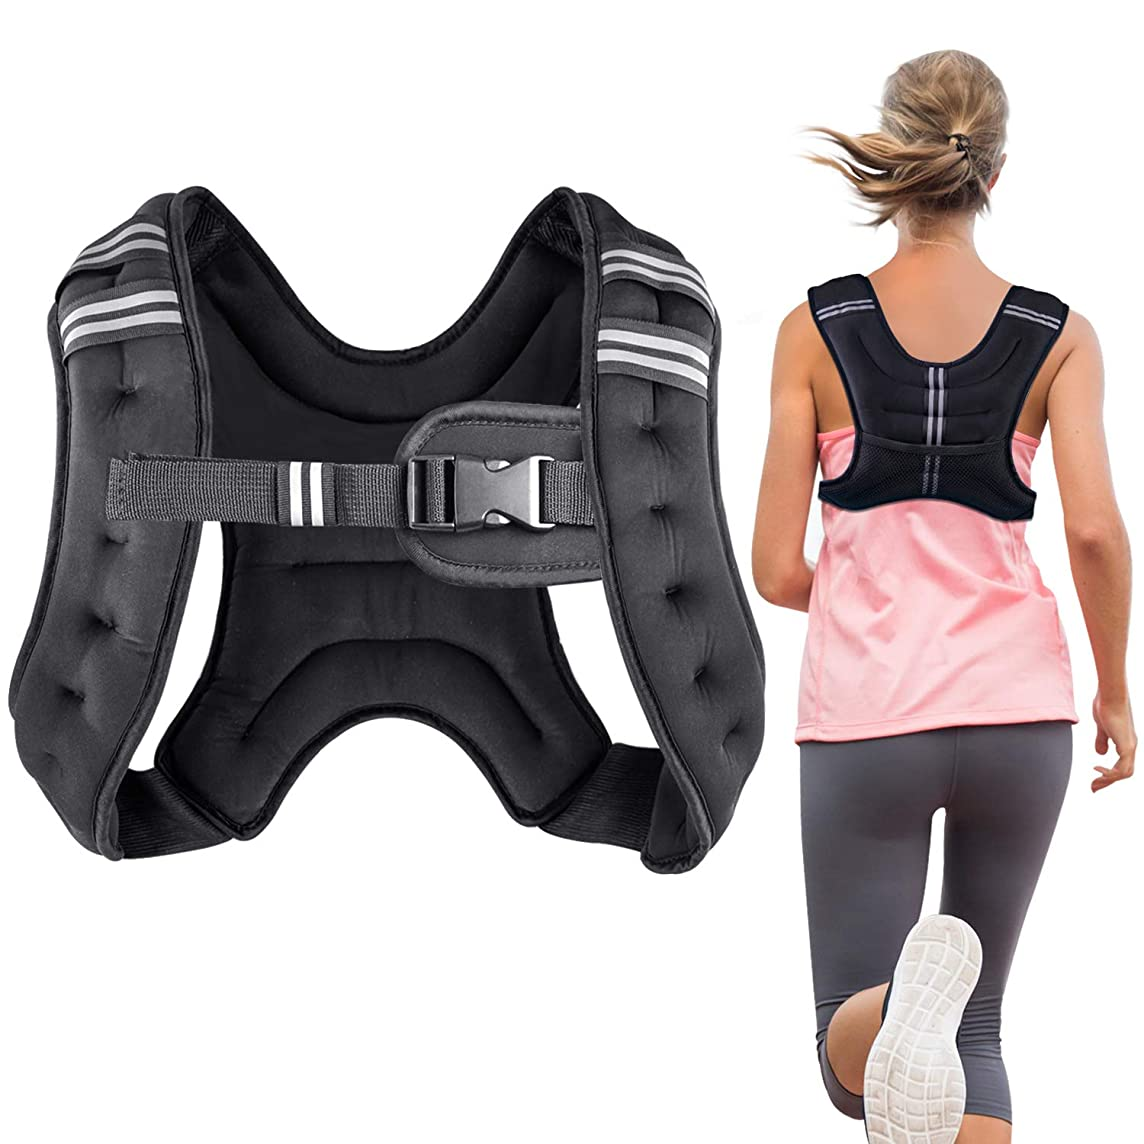 Henkelion Running Weight Vest for Men Women Kids [6/8 /12 lbs] Weights Included, Body Weight Vests for Training Workout, Jogging, Cardio, Walking, Elite Adjustable Weighted Vest Workout Equipment